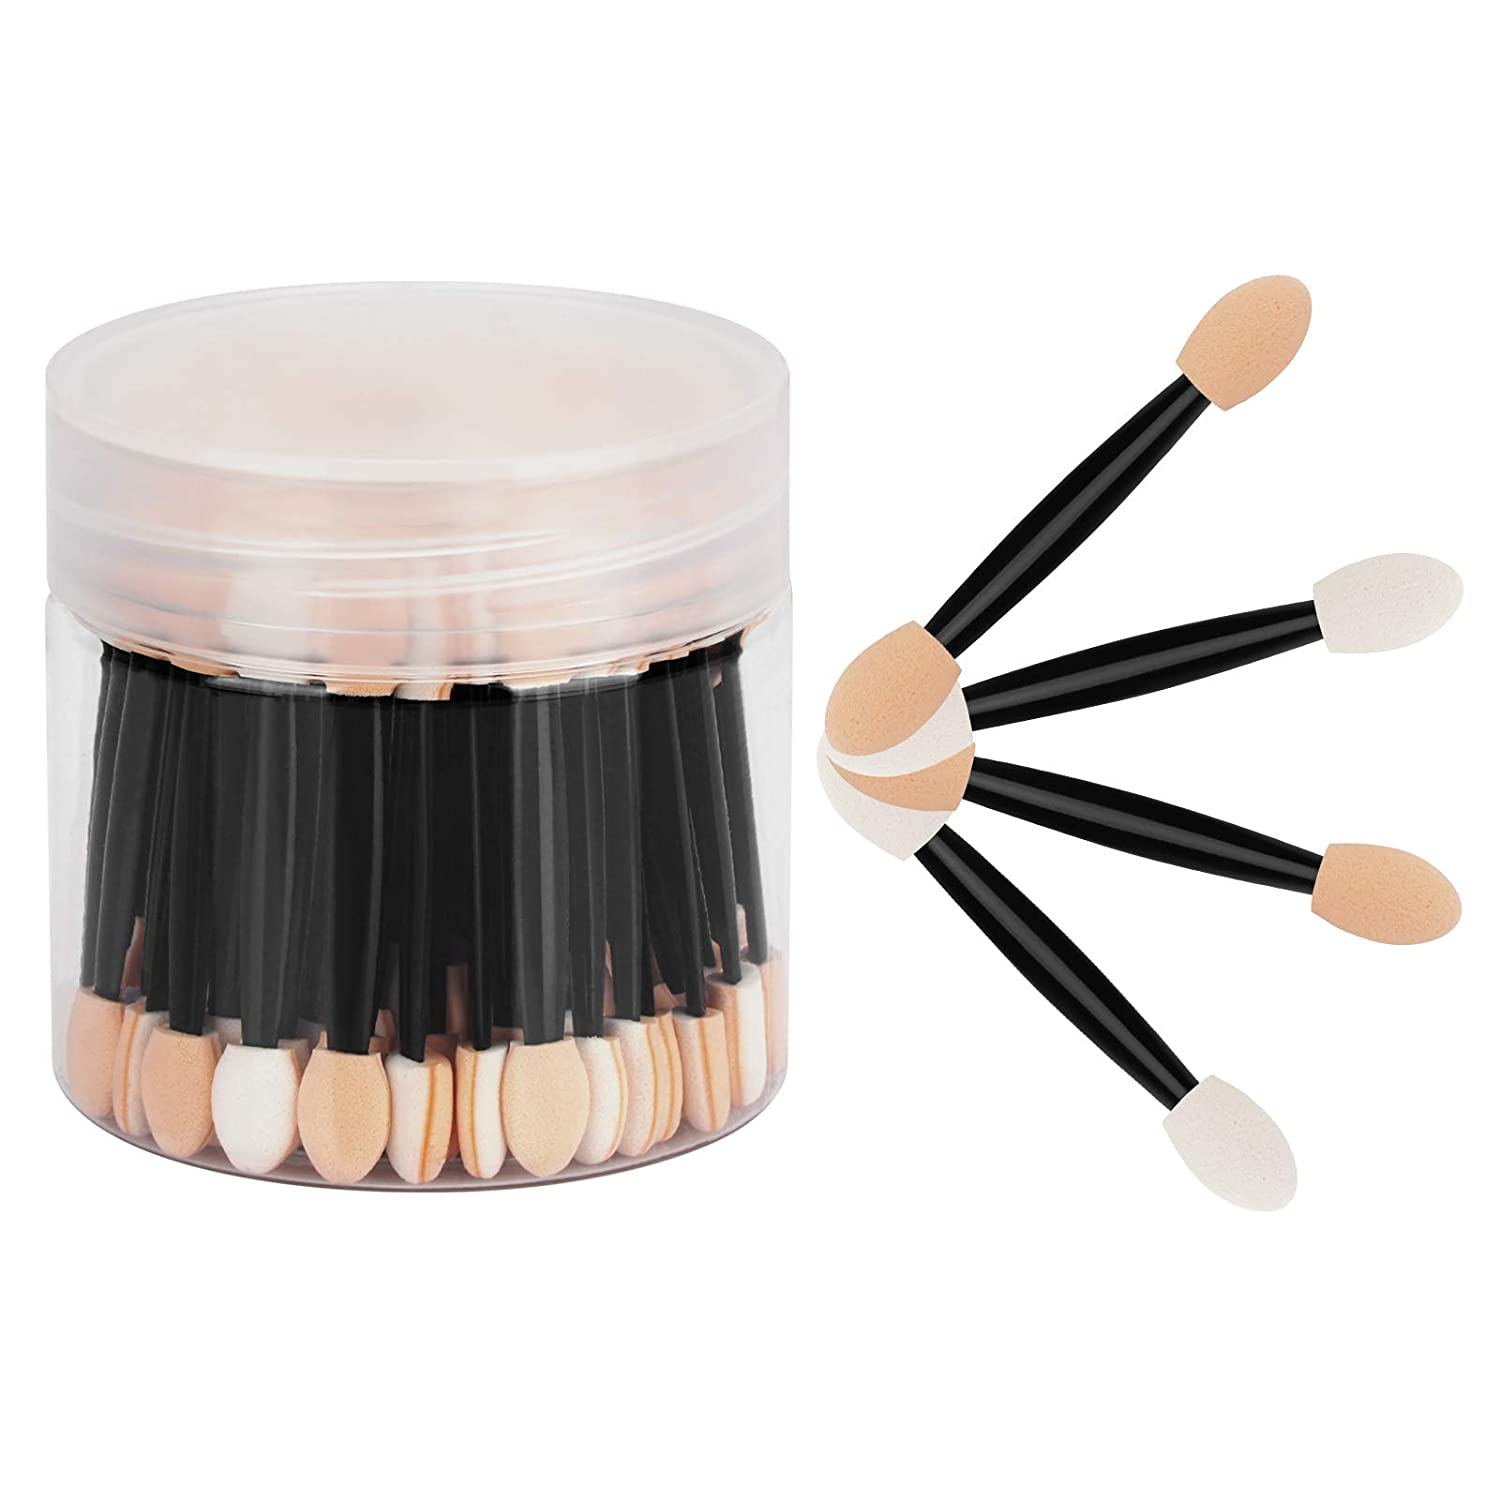 CHEFBEE 80pcs Eyeshadow Applicators Indefinitely D with Disposable Container Spasm price